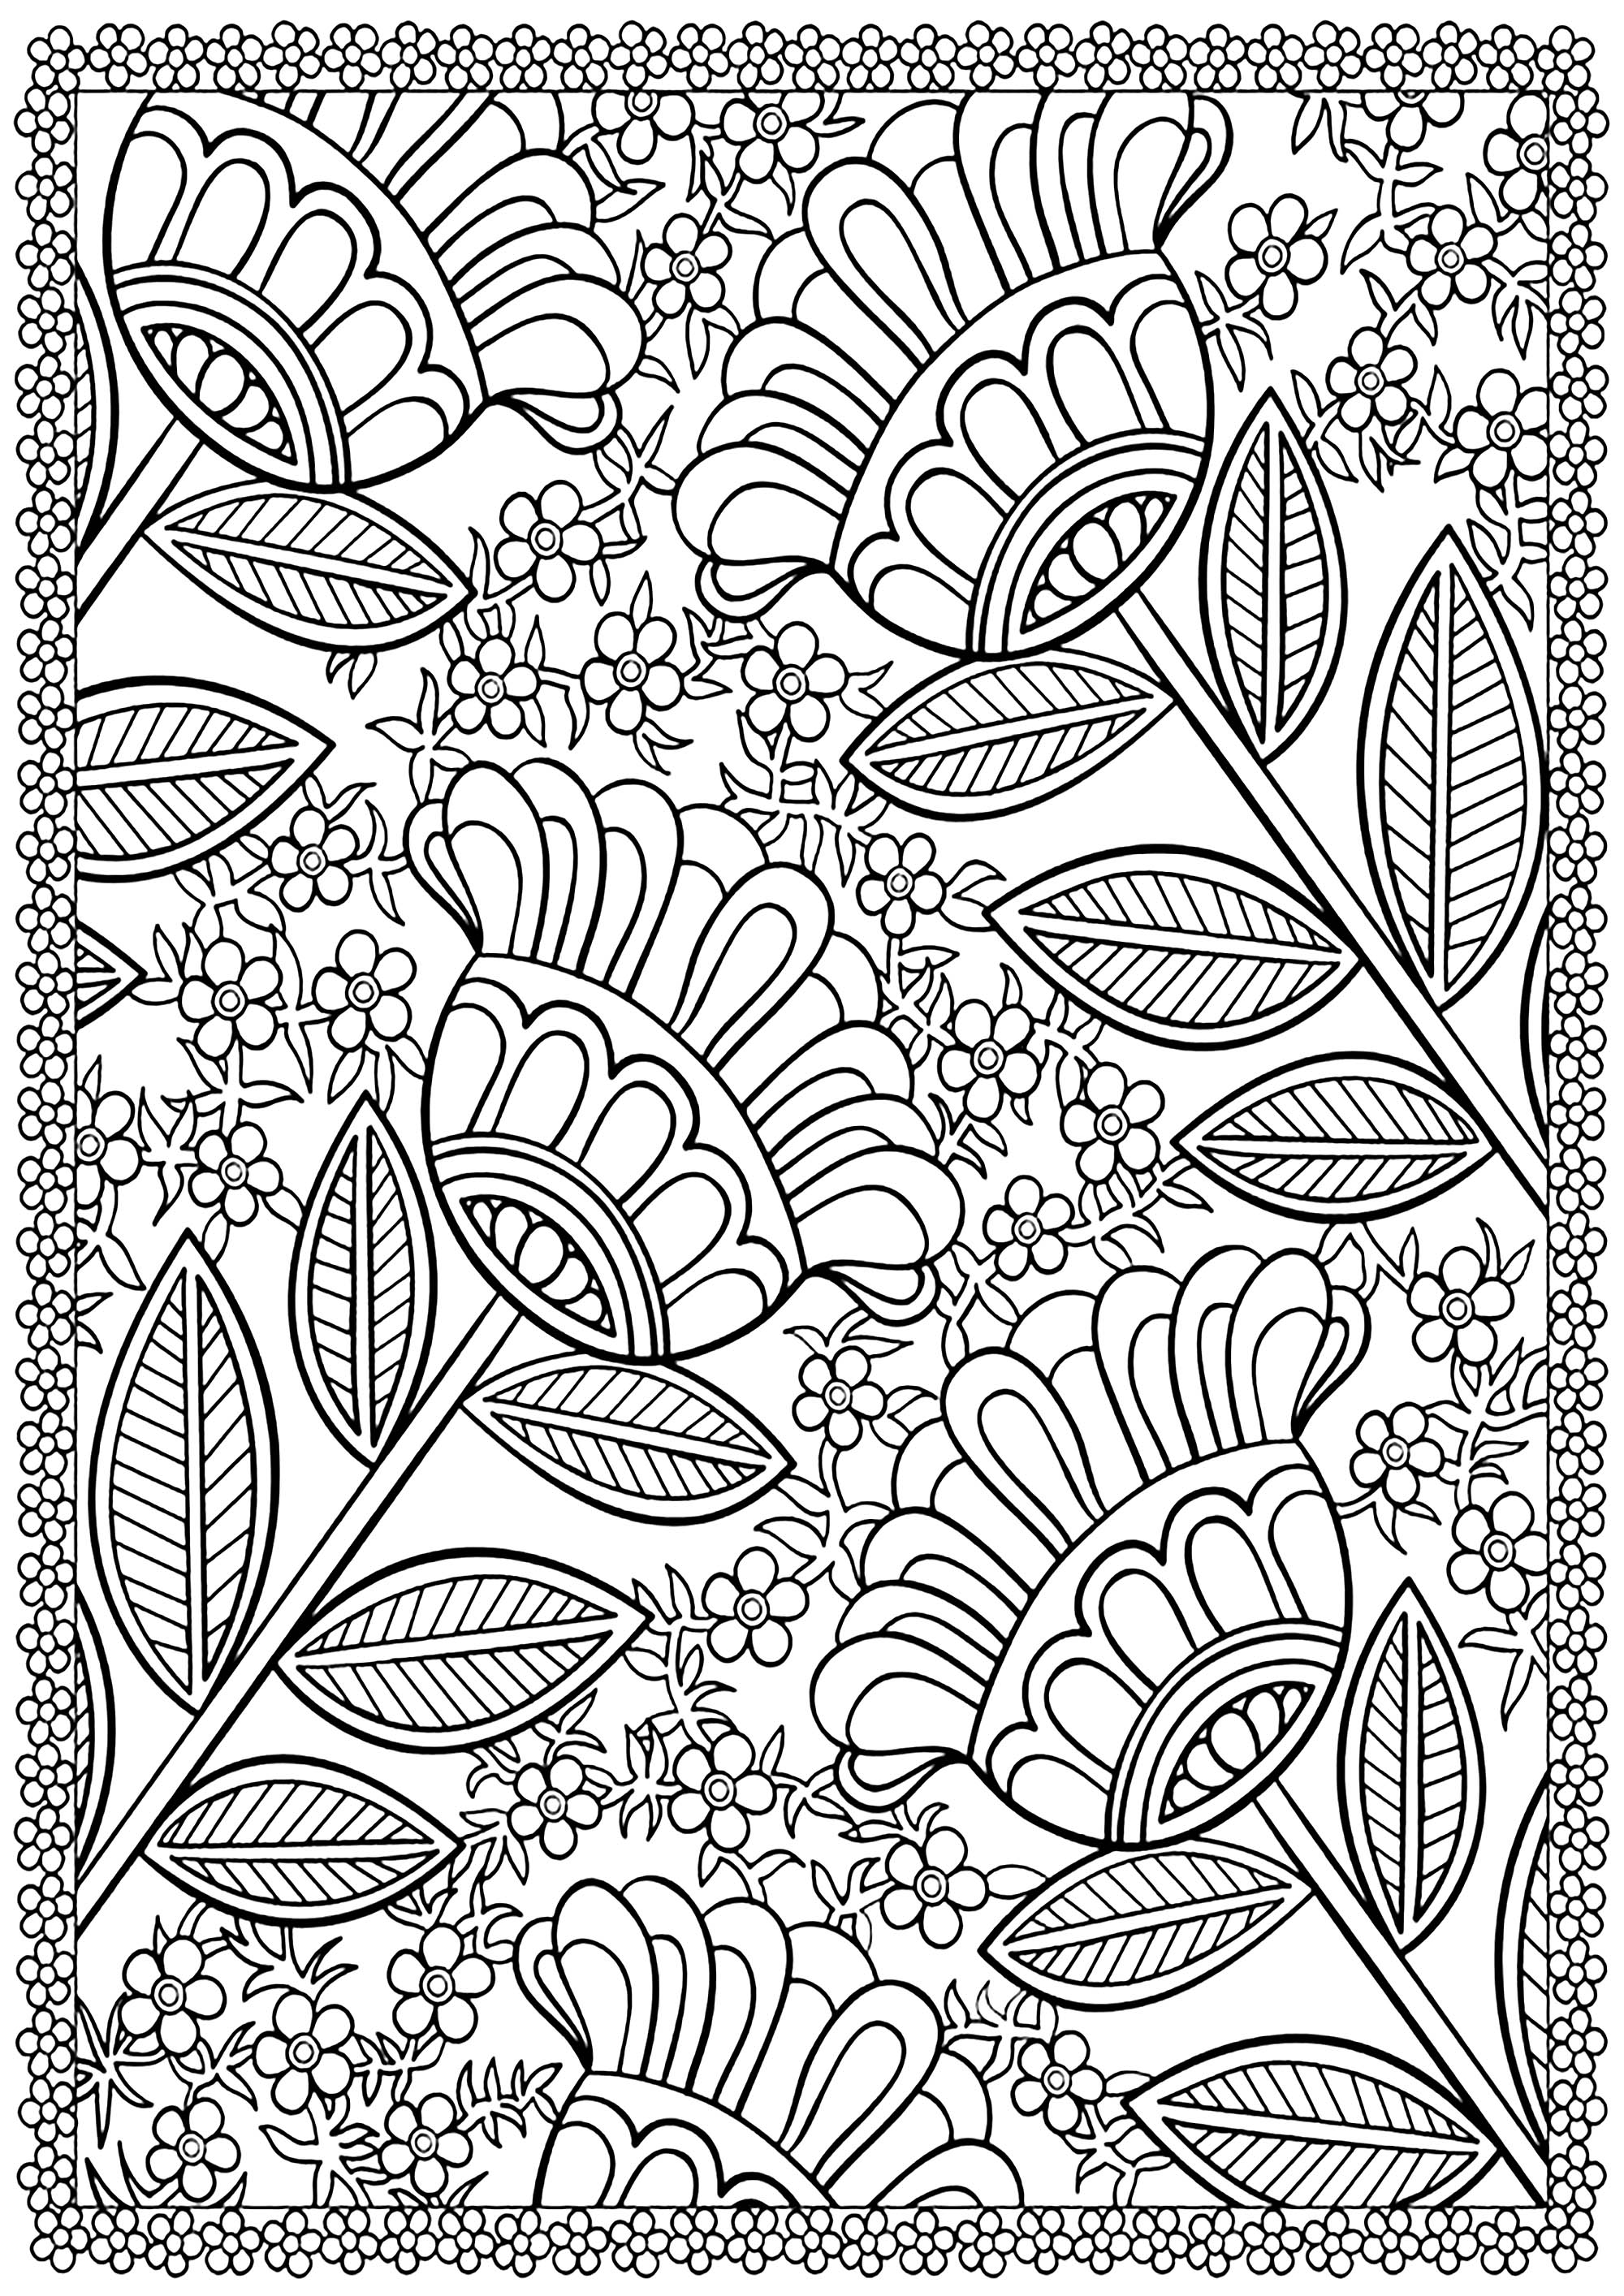 small coloring pages for adults - photo#20